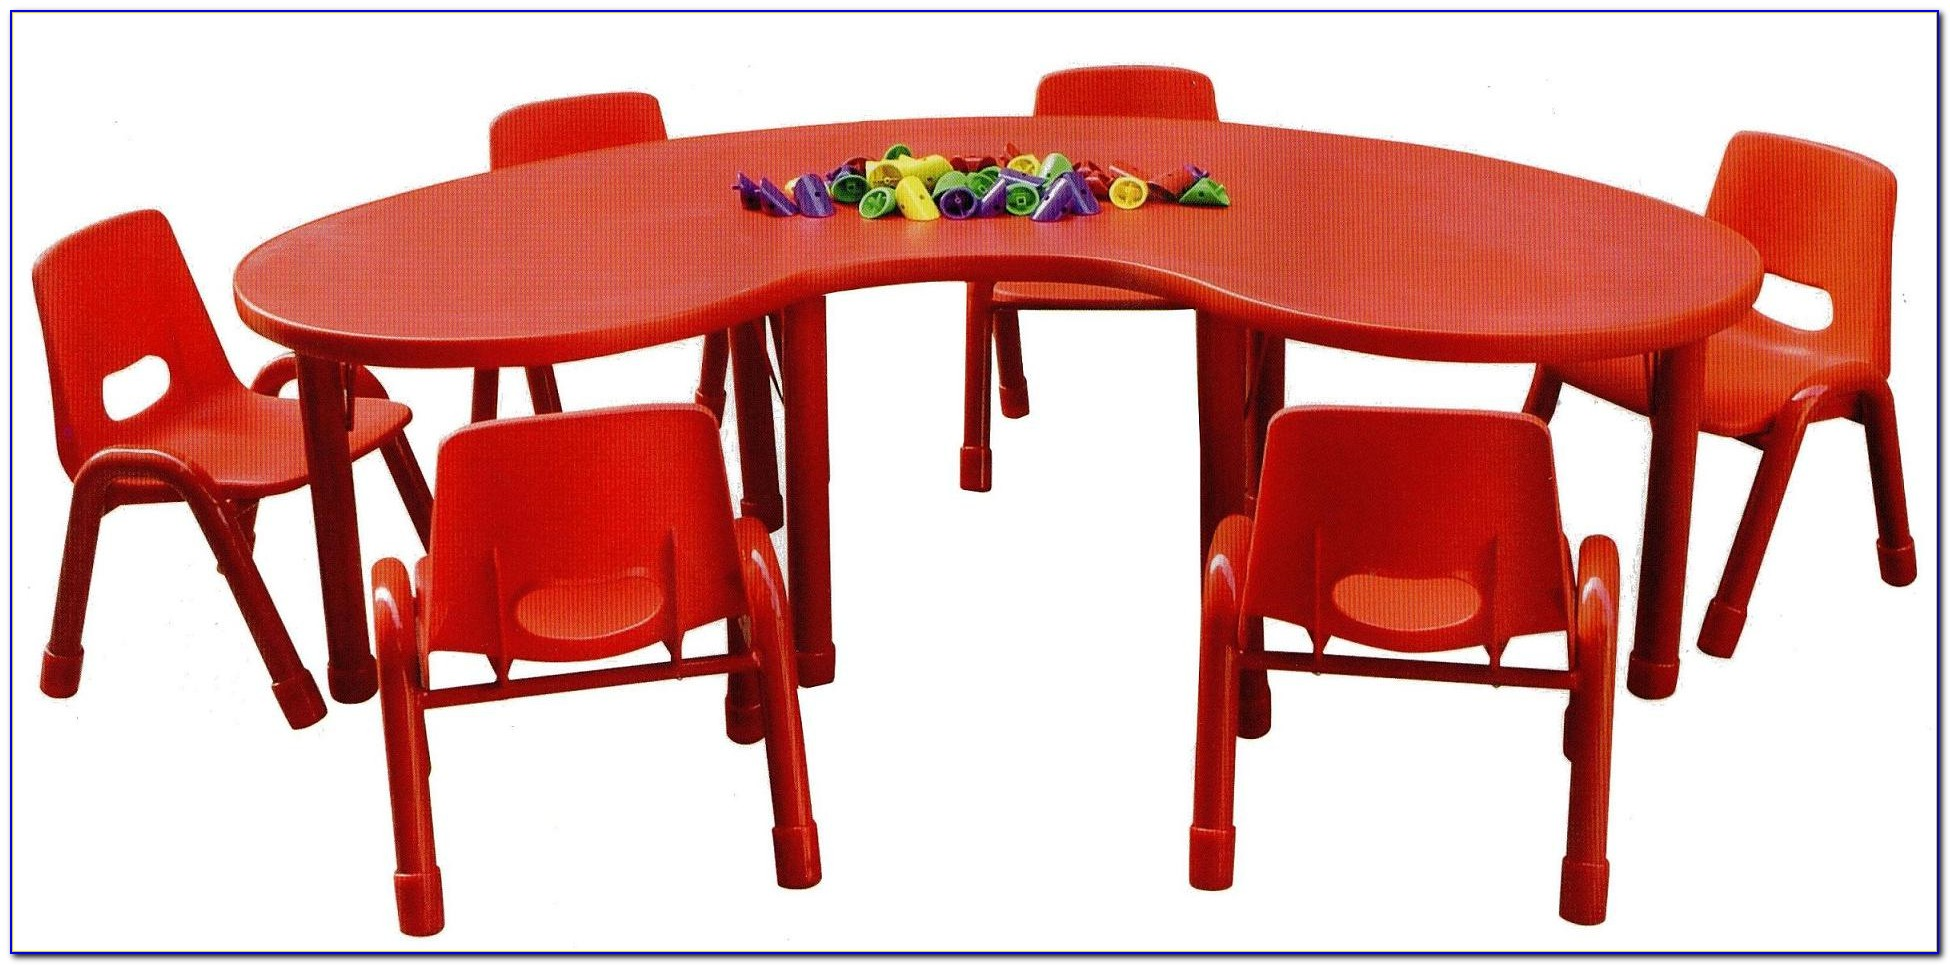 Toddler Chair And Table Set Plastic